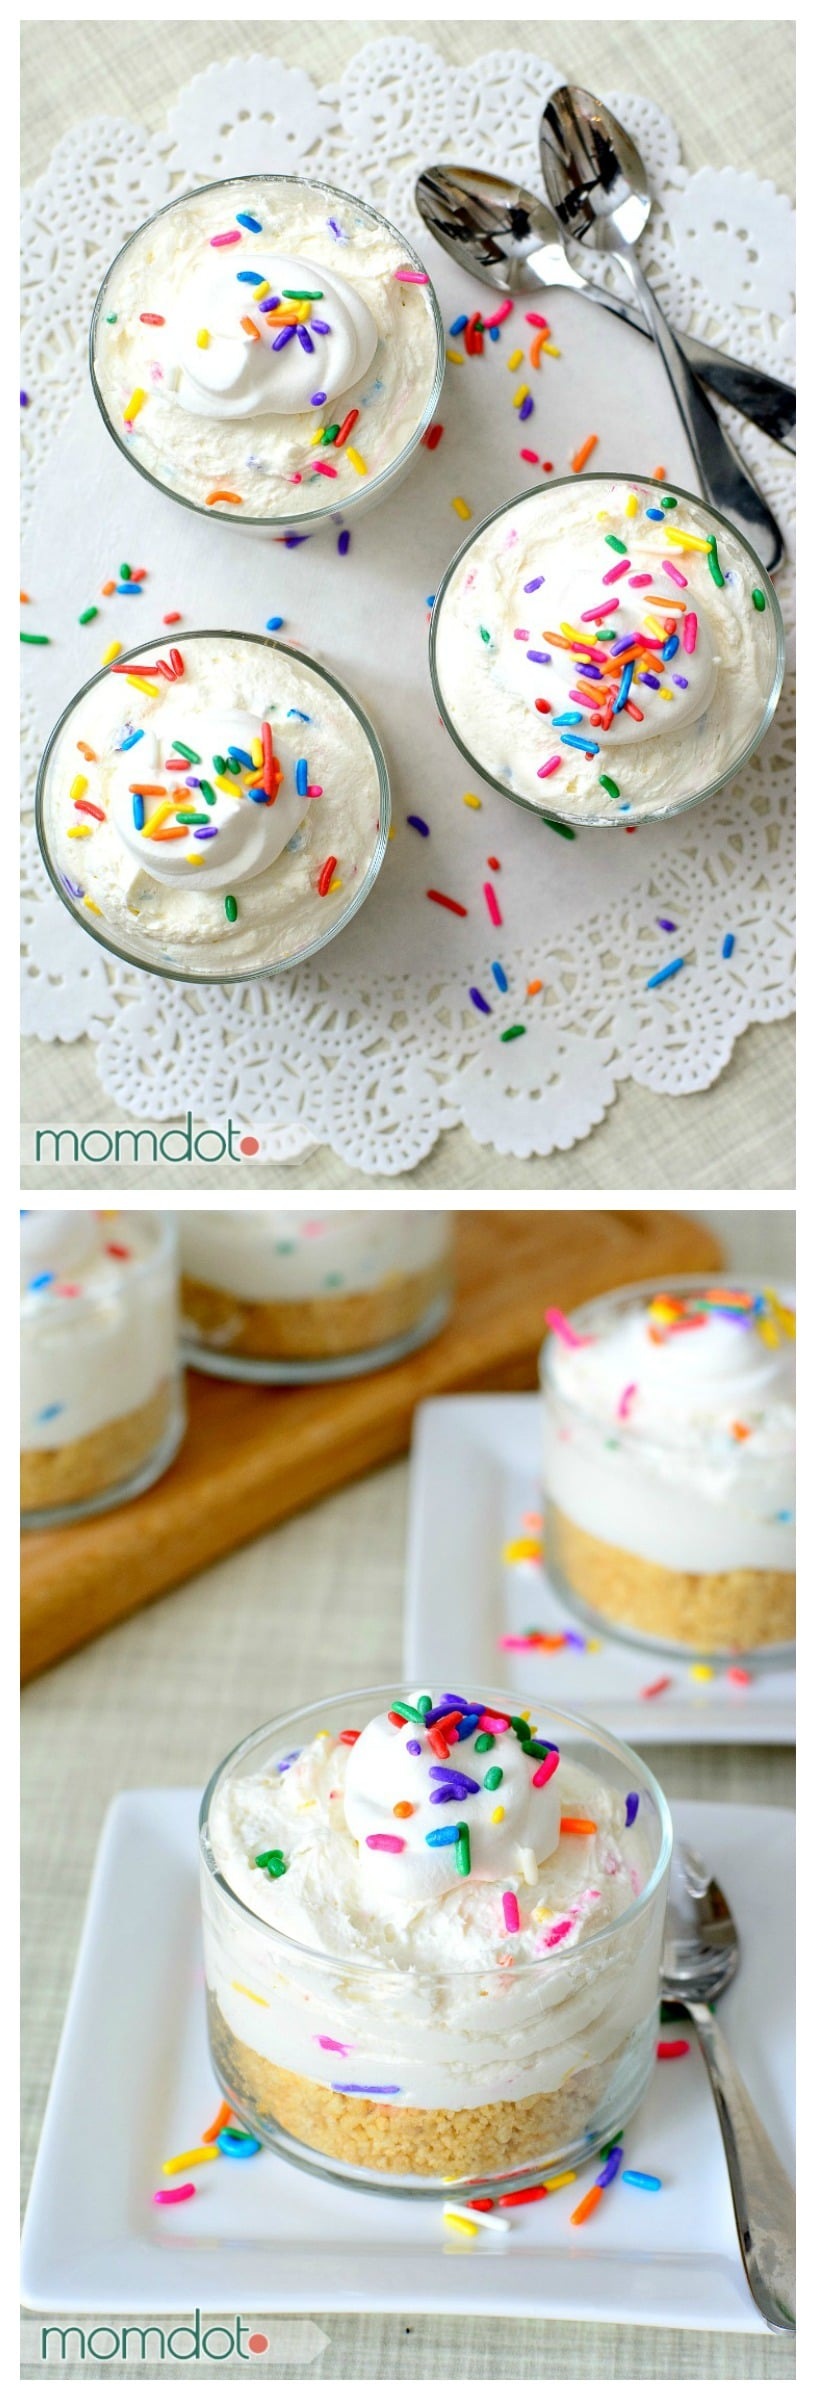 Mini Funfetti Cheesecakes perfect for a decadent sprinkle filled treat : We call them Fairy Cheesecakes